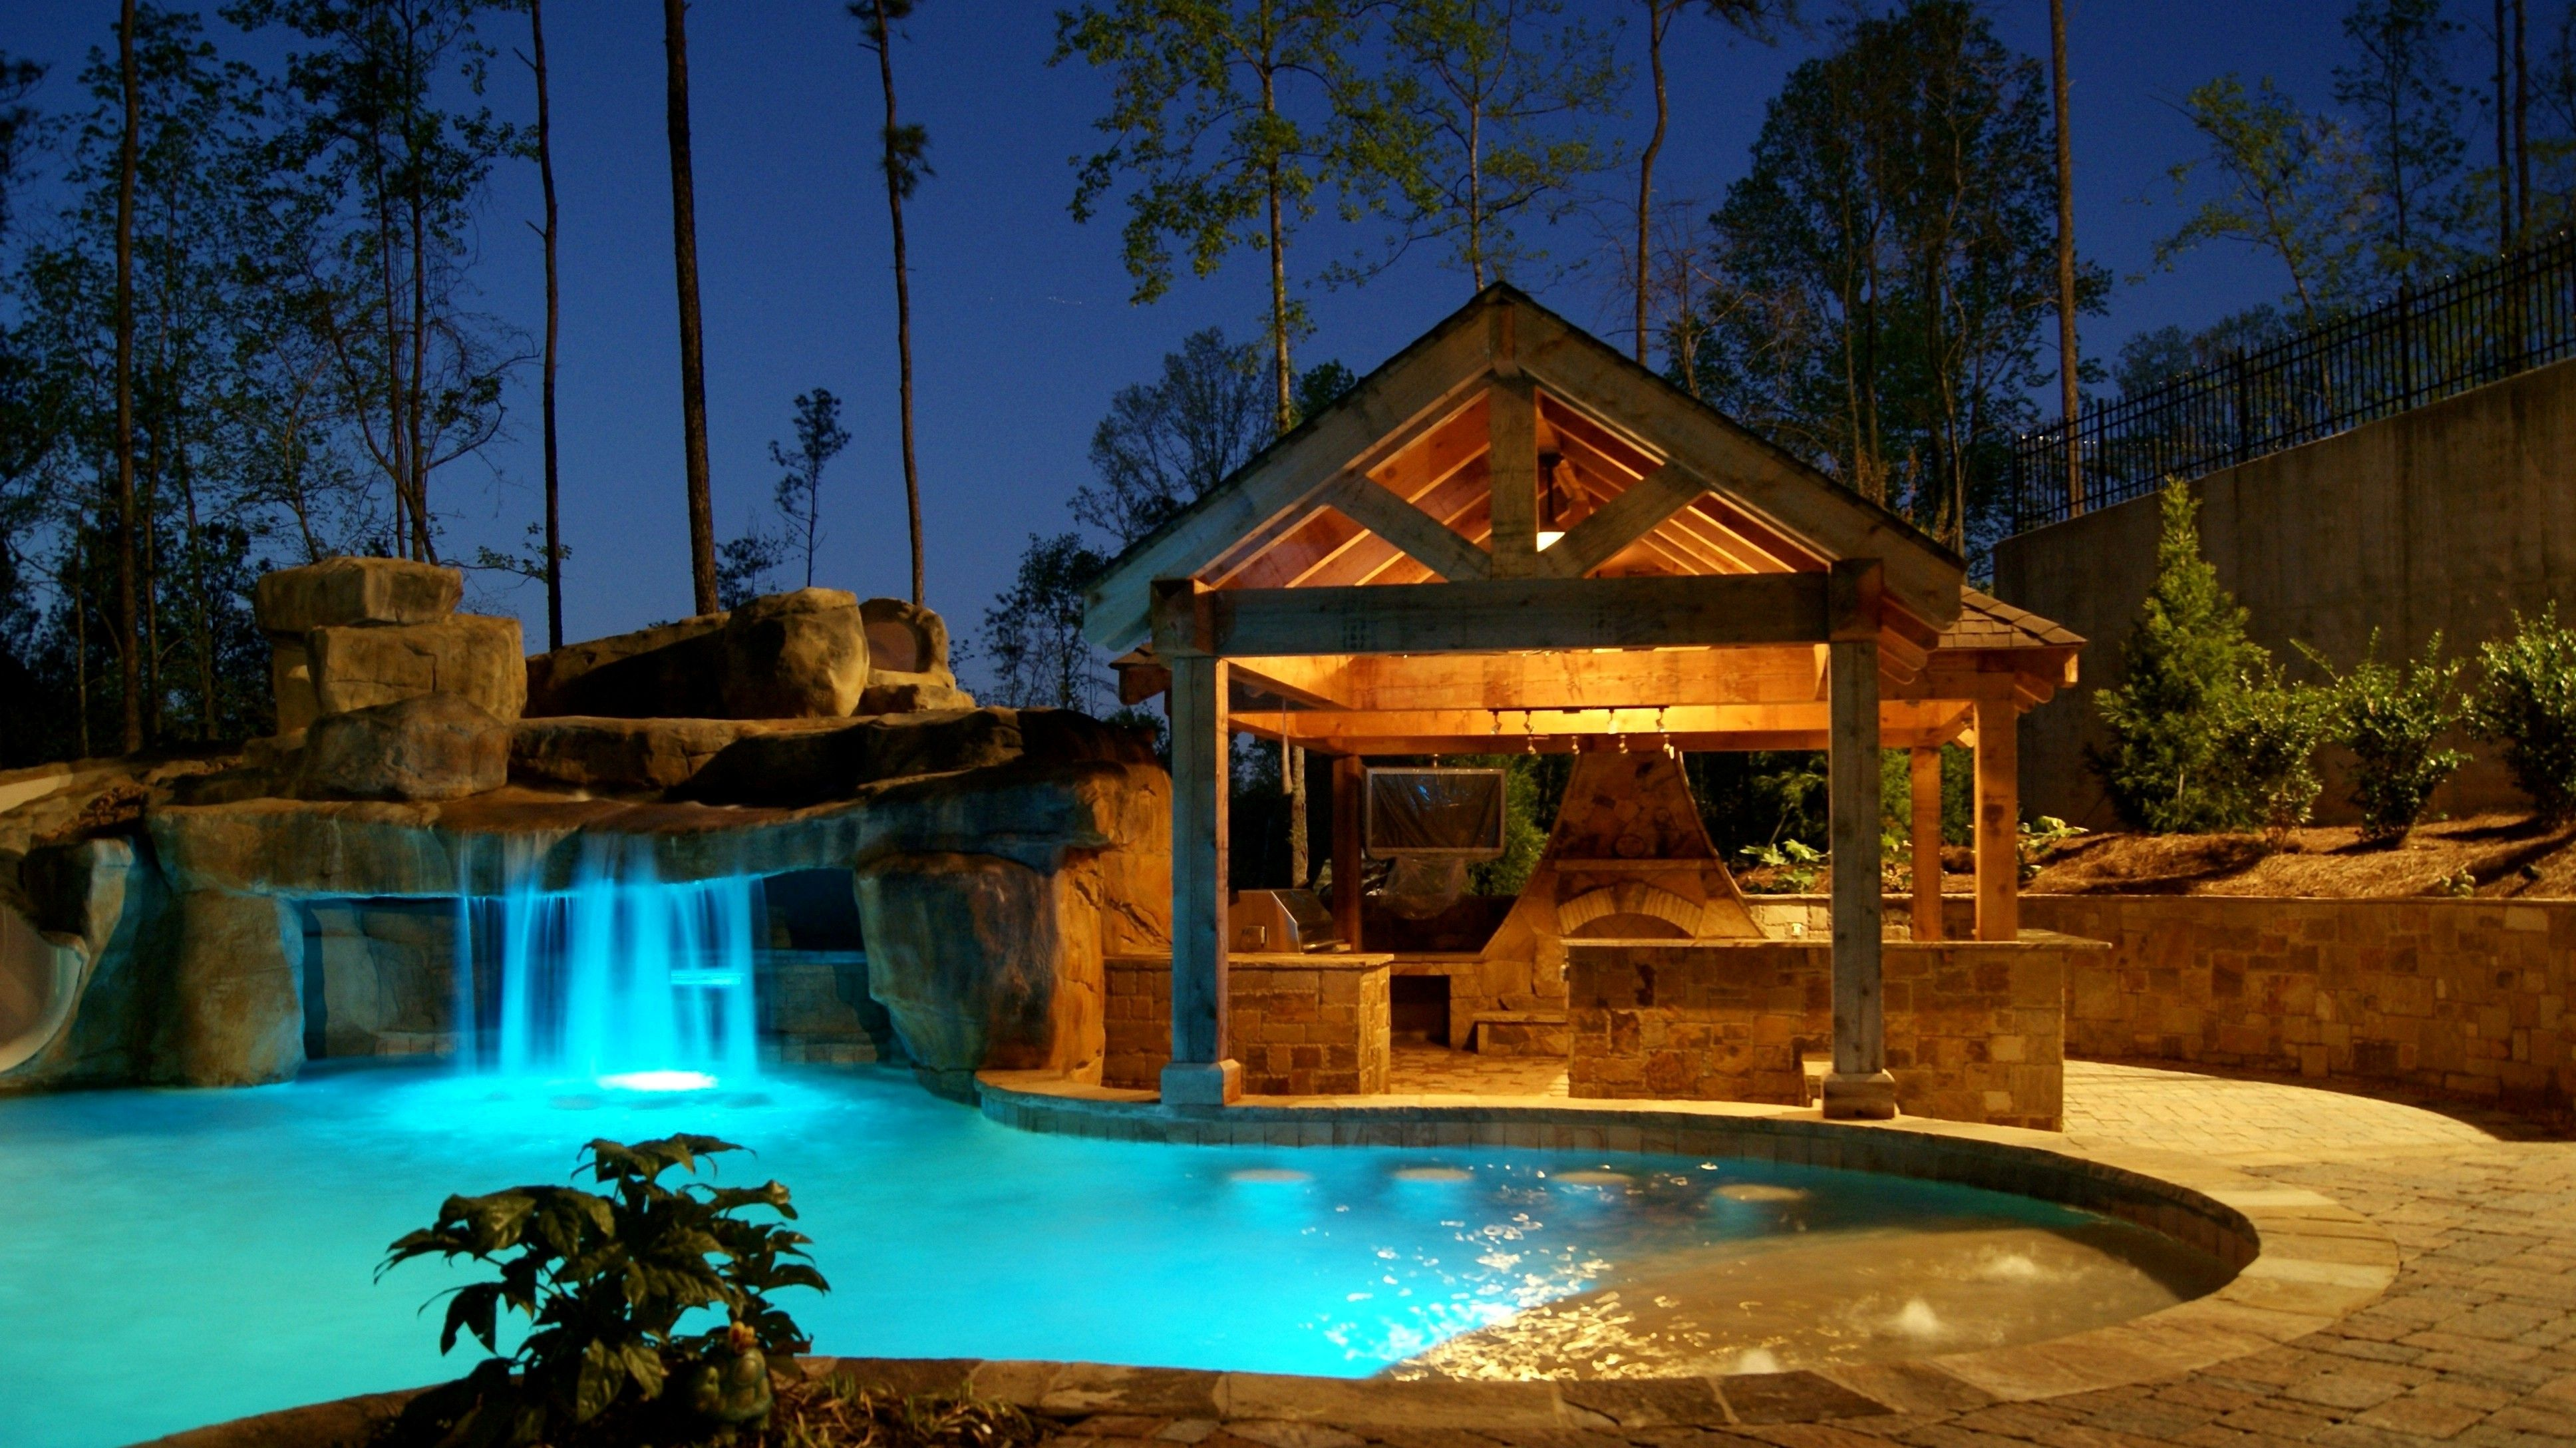 surprising dream living room pool | Georgia Dream Pools - Outdoor Living SpacesGeorgia Dream ...